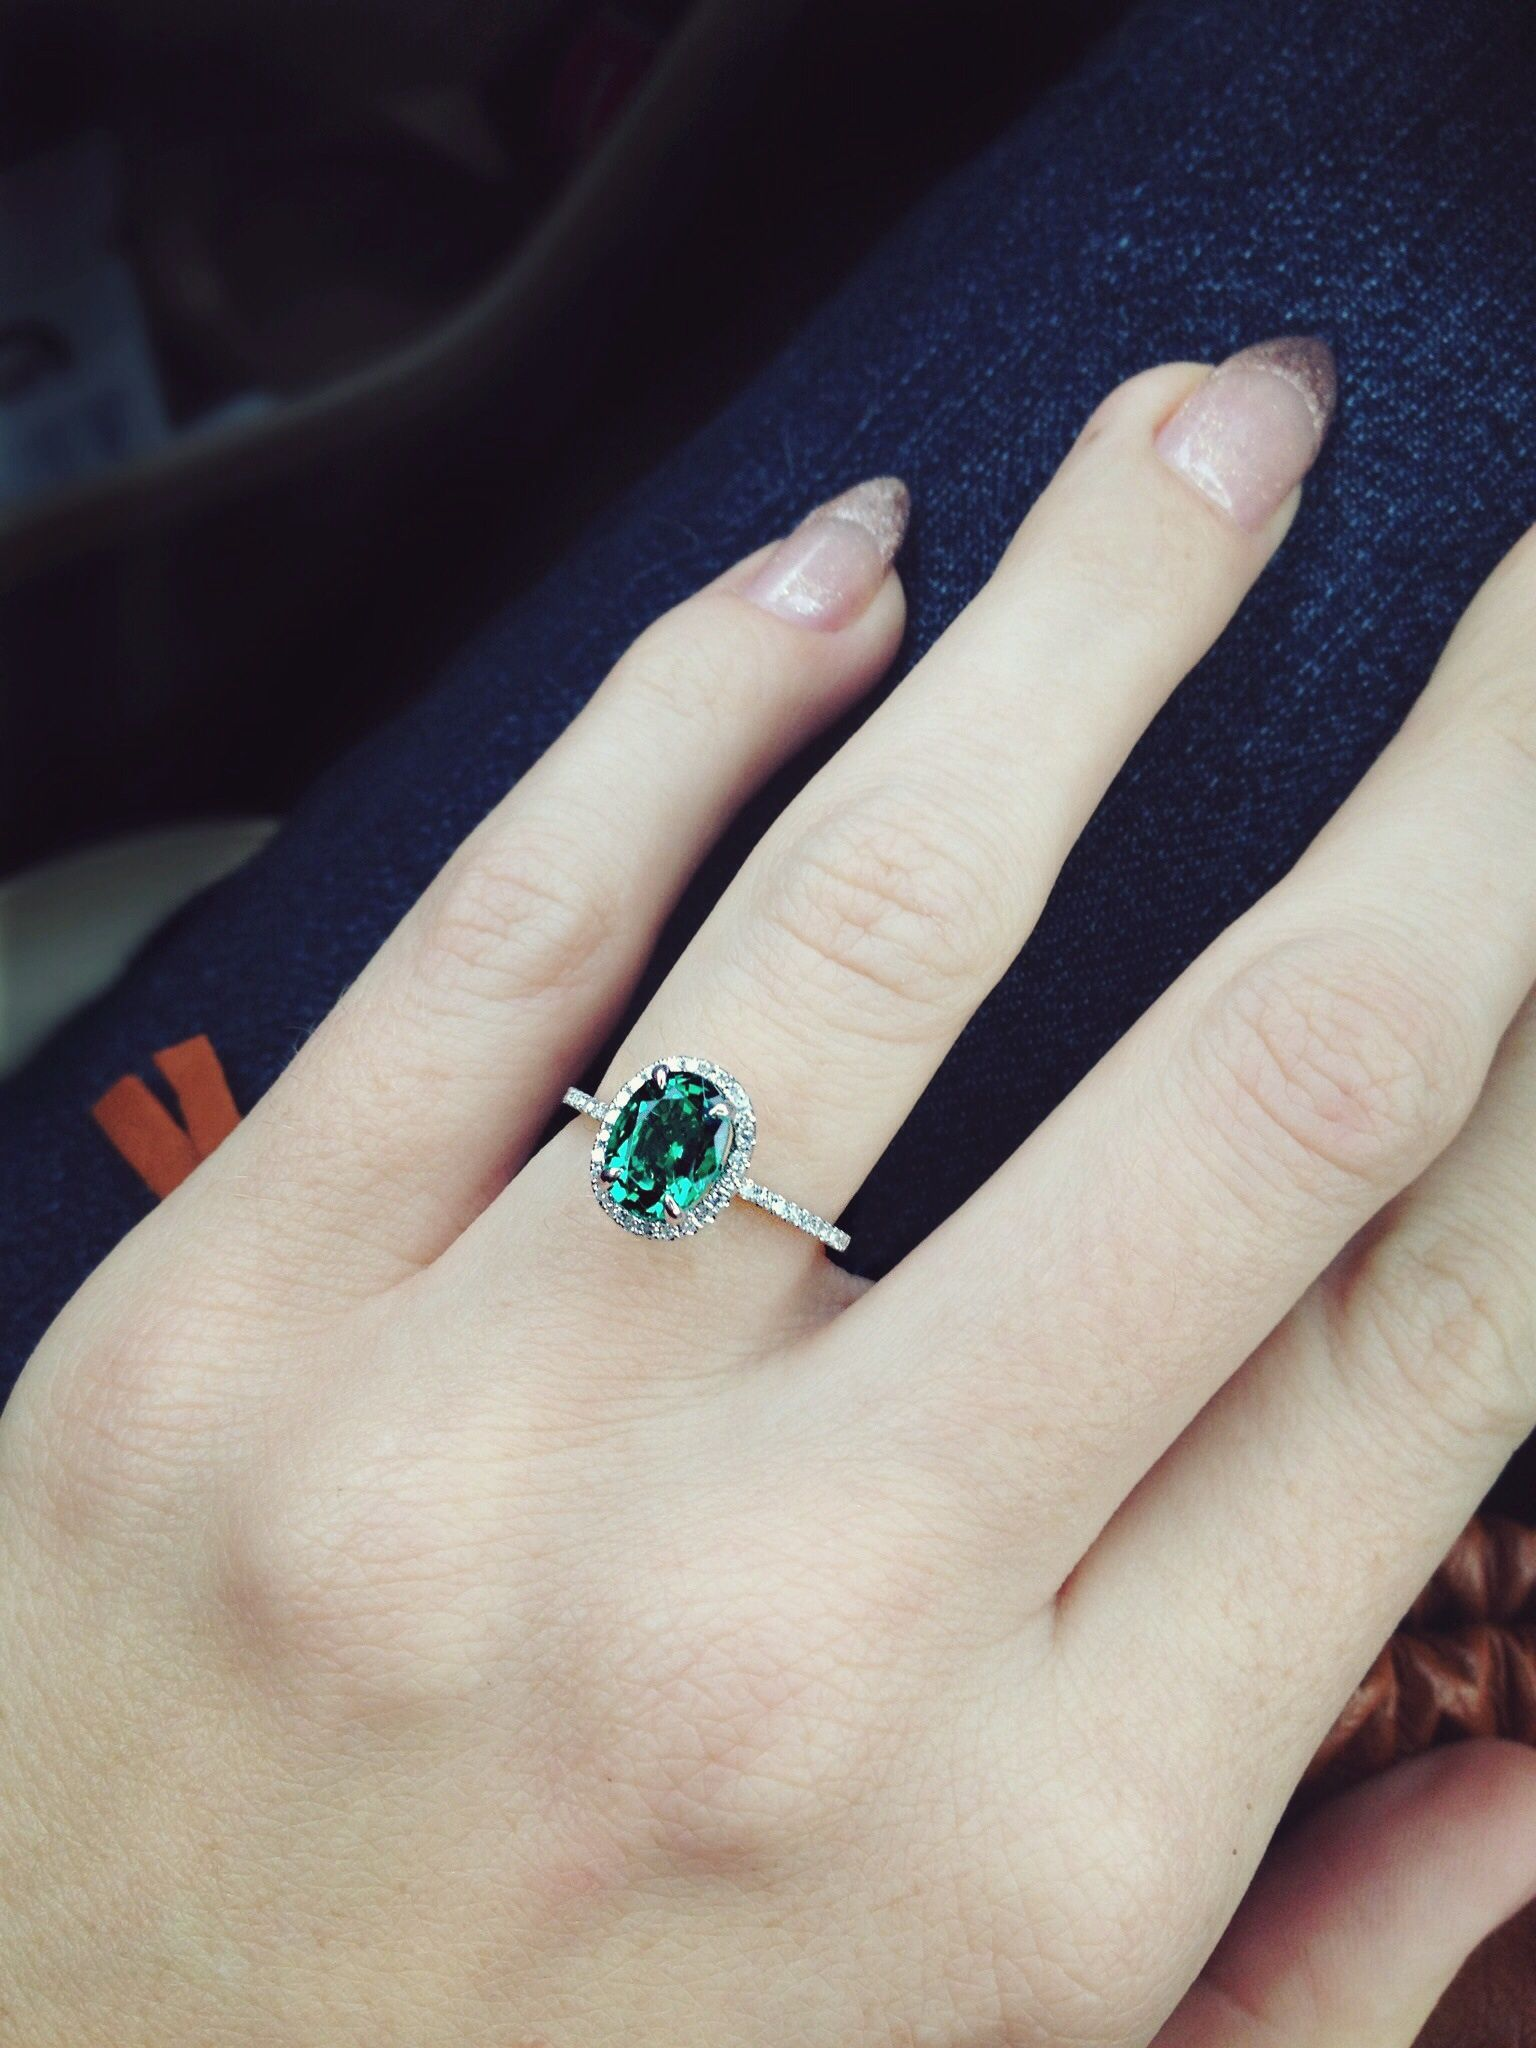 boho engagement band emerald gemstone jewellery kind ring jewelry and cut diamond wedding one twig rings of engagment a